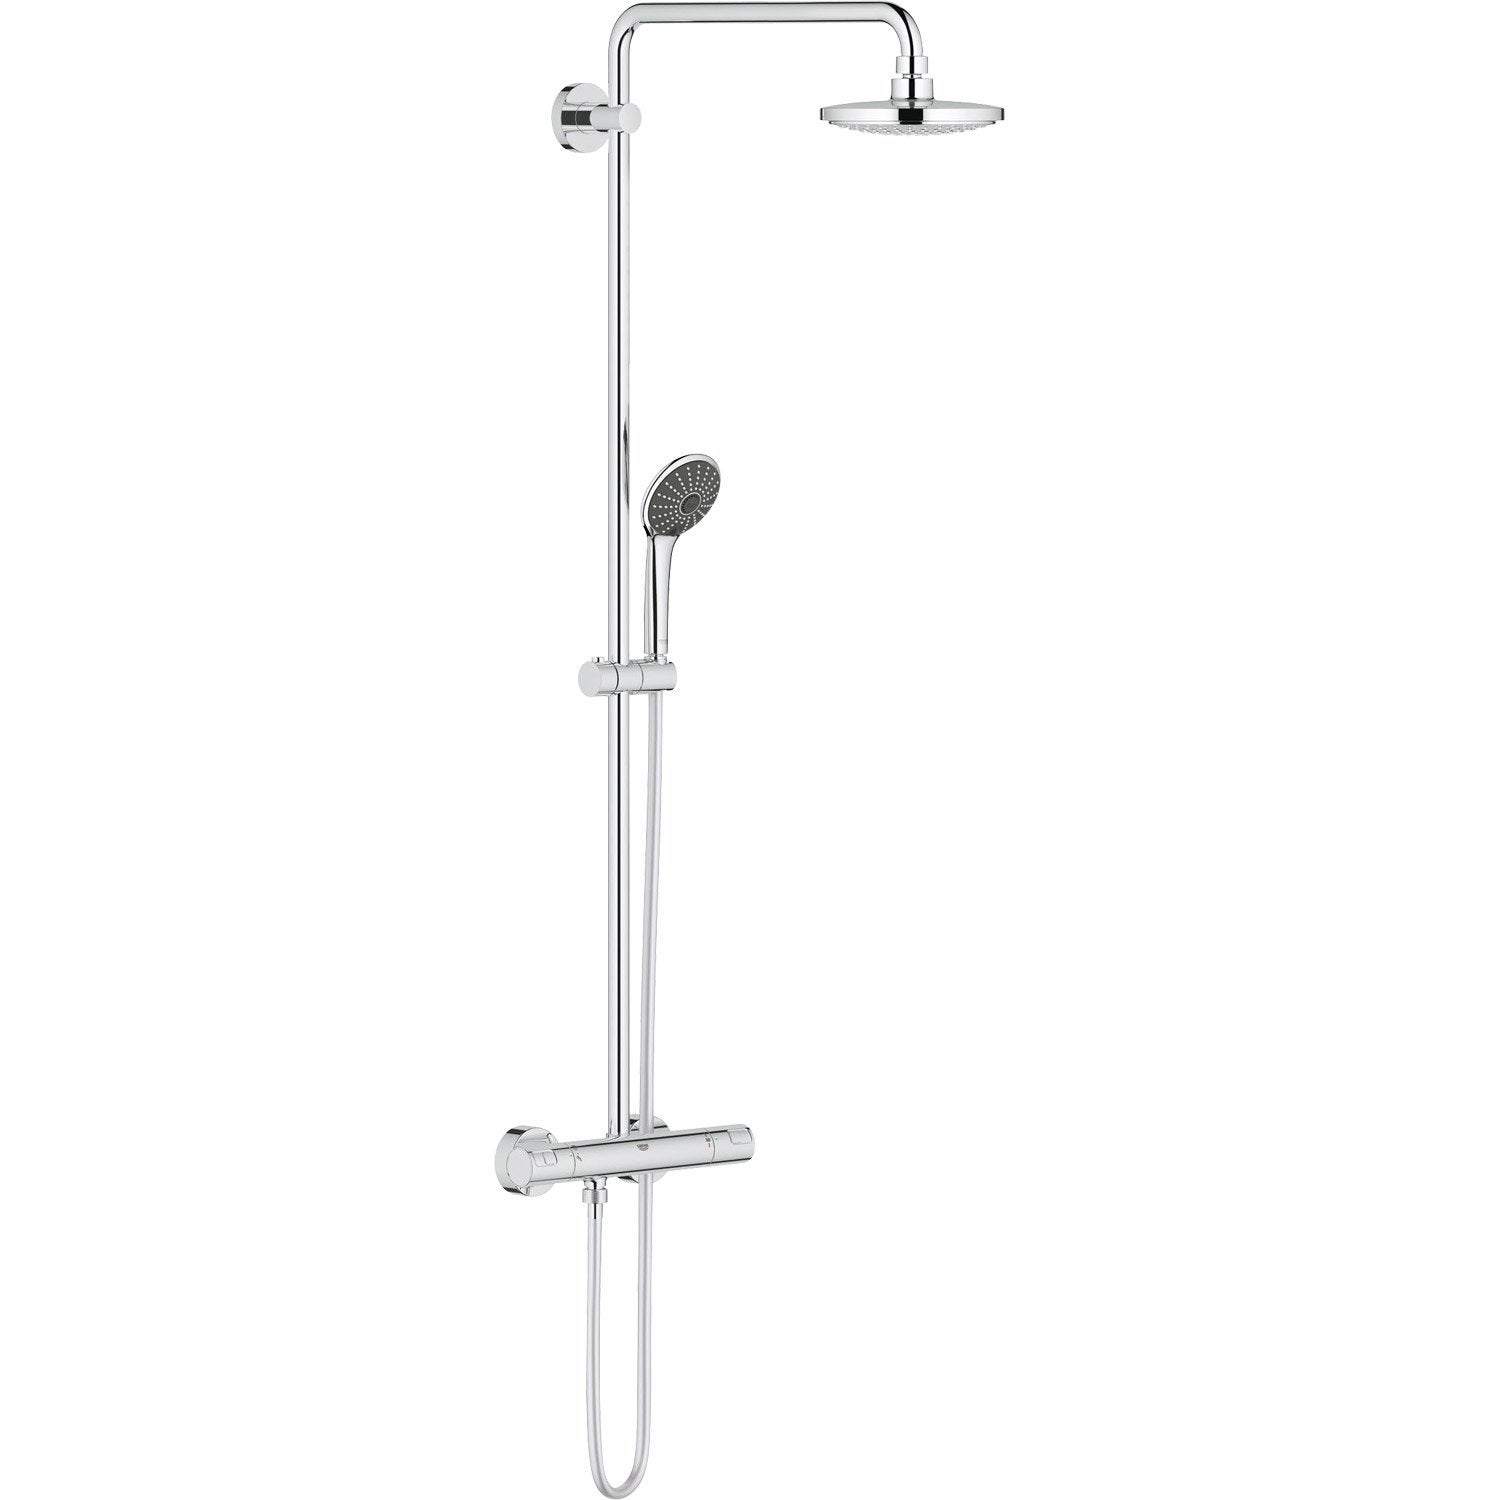 colonne de douche avec robinetterie grohe vitalio system leroy merlin. Black Bedroom Furniture Sets. Home Design Ideas